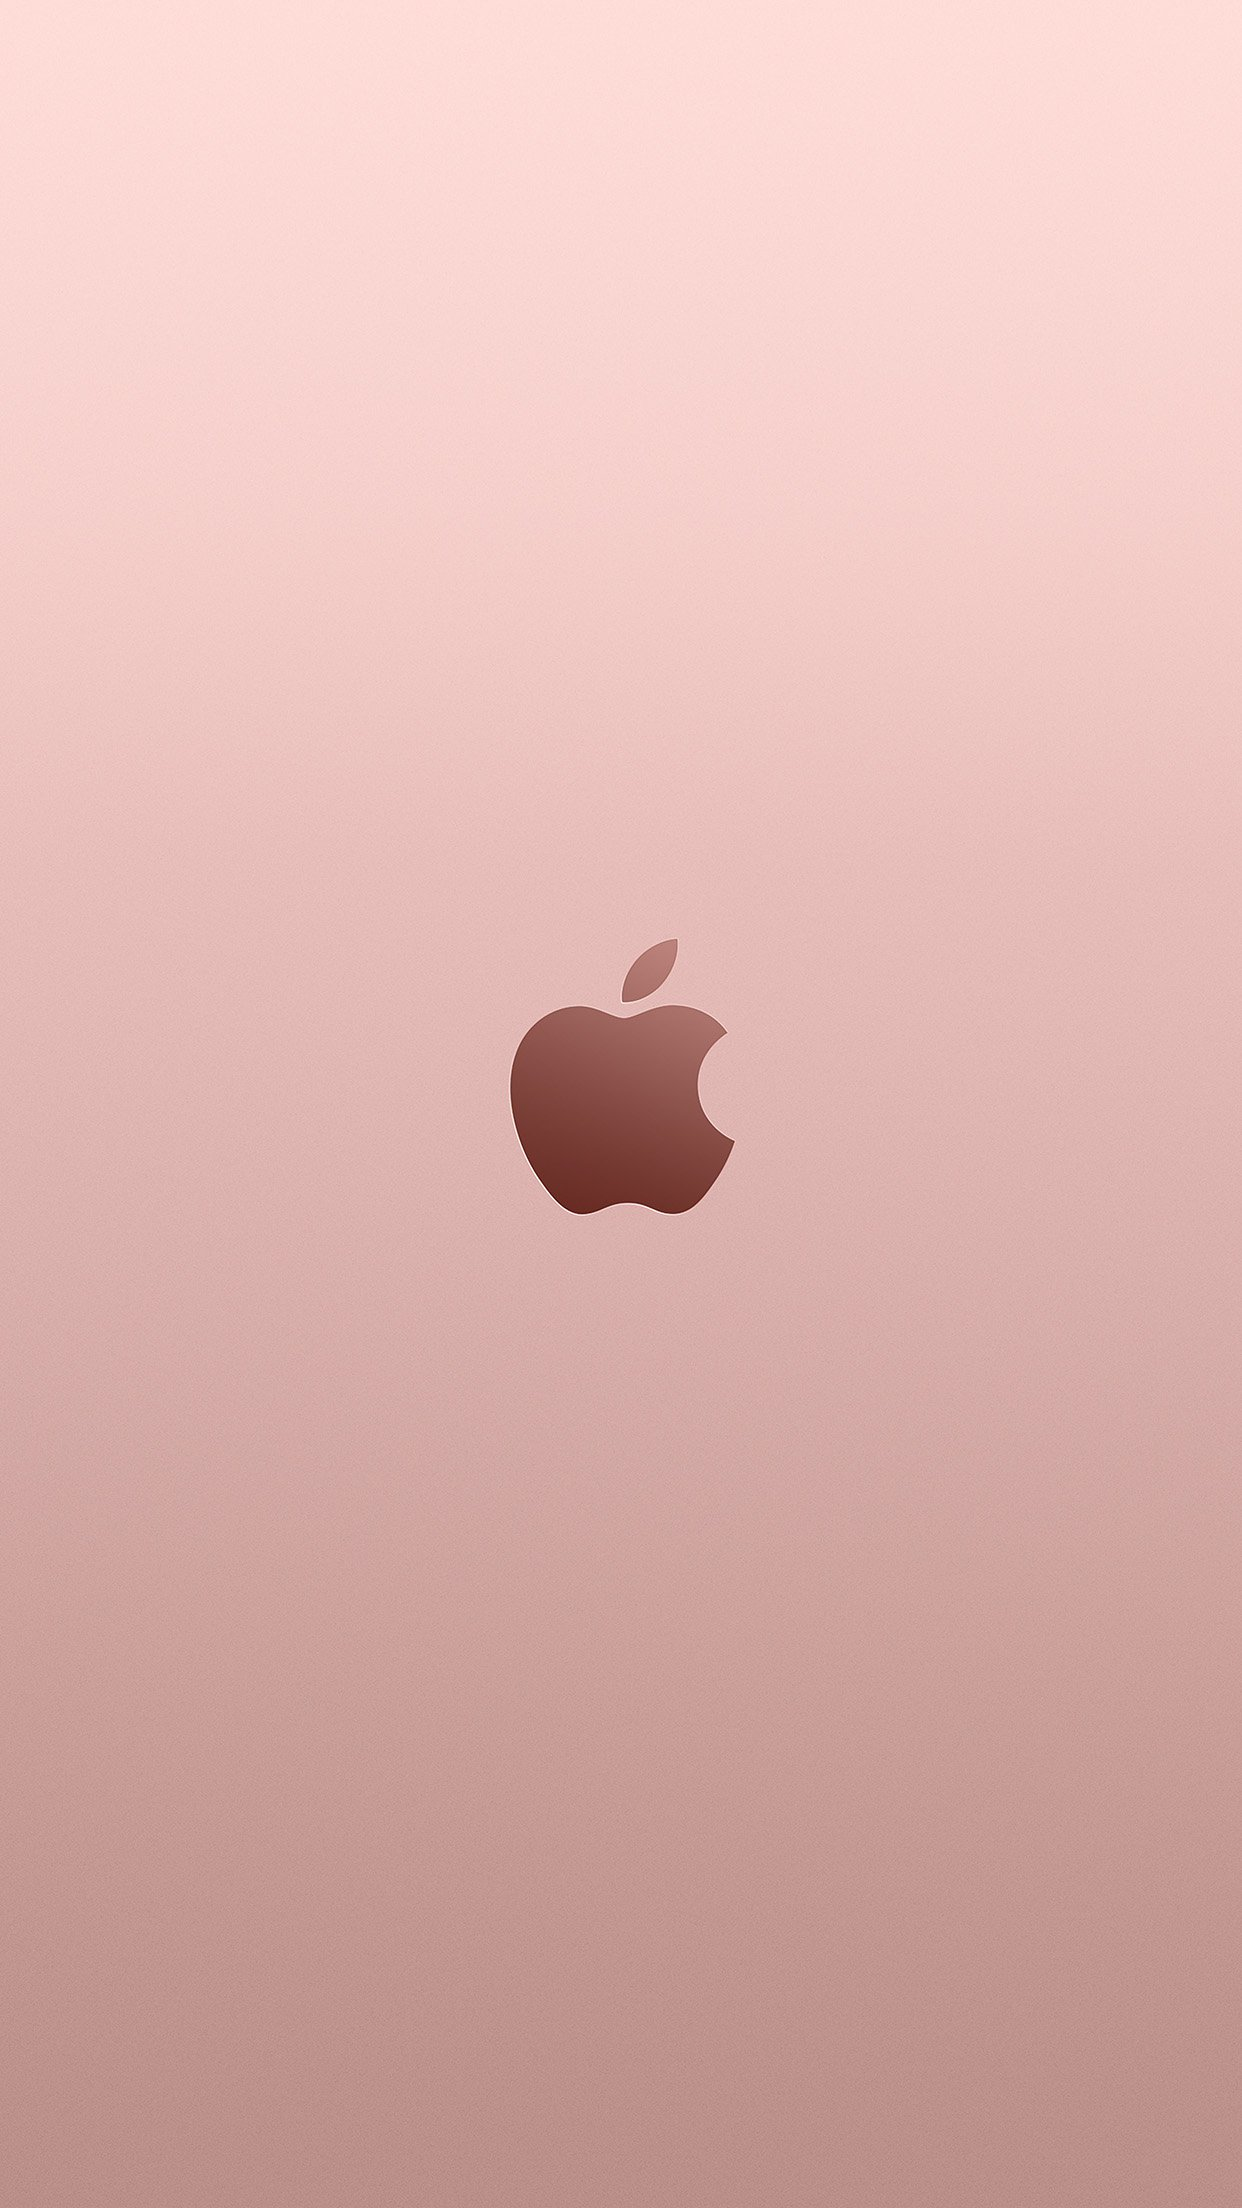 Apple Pink Rose Gold Minimal Illustration Art Android wallpaper